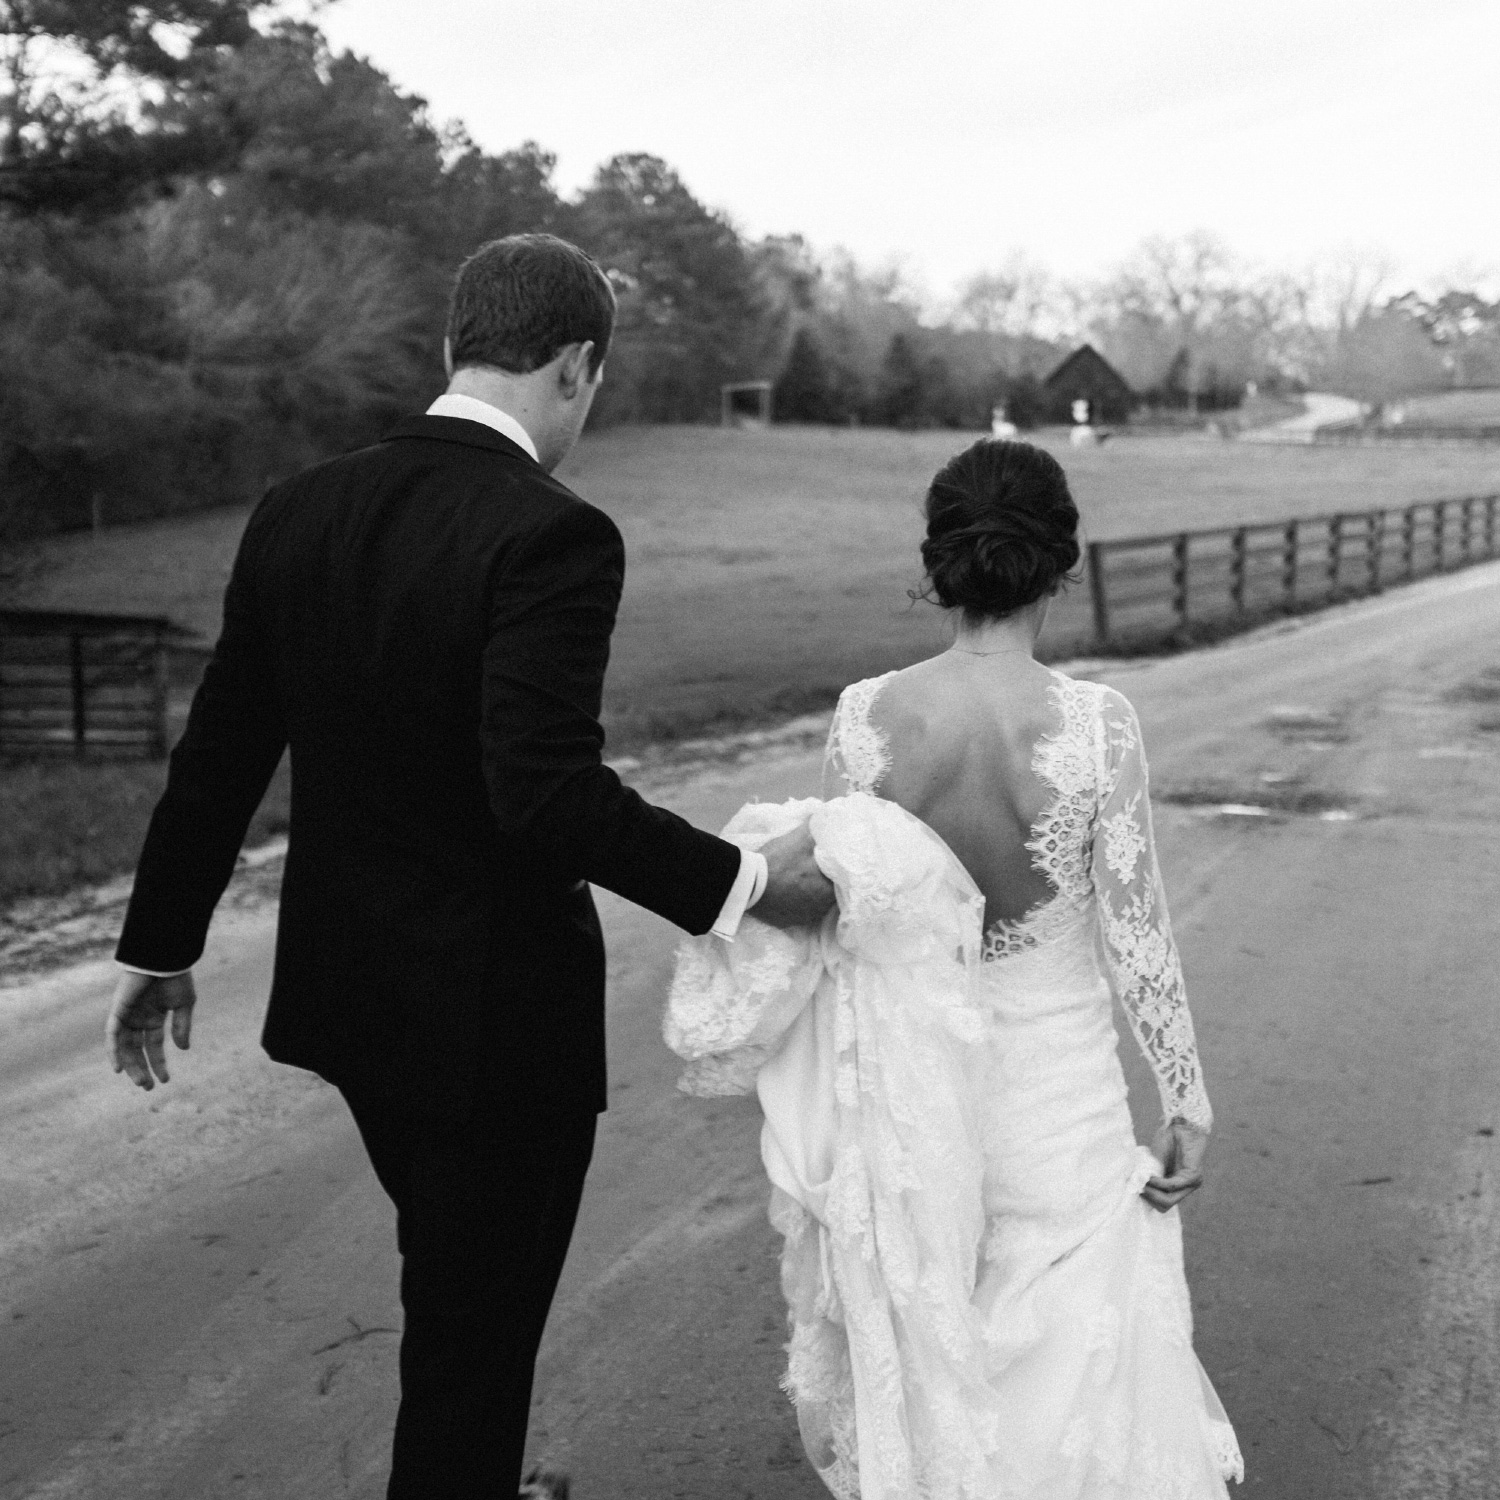 Bride and Groom walking together fuji x100t camera review